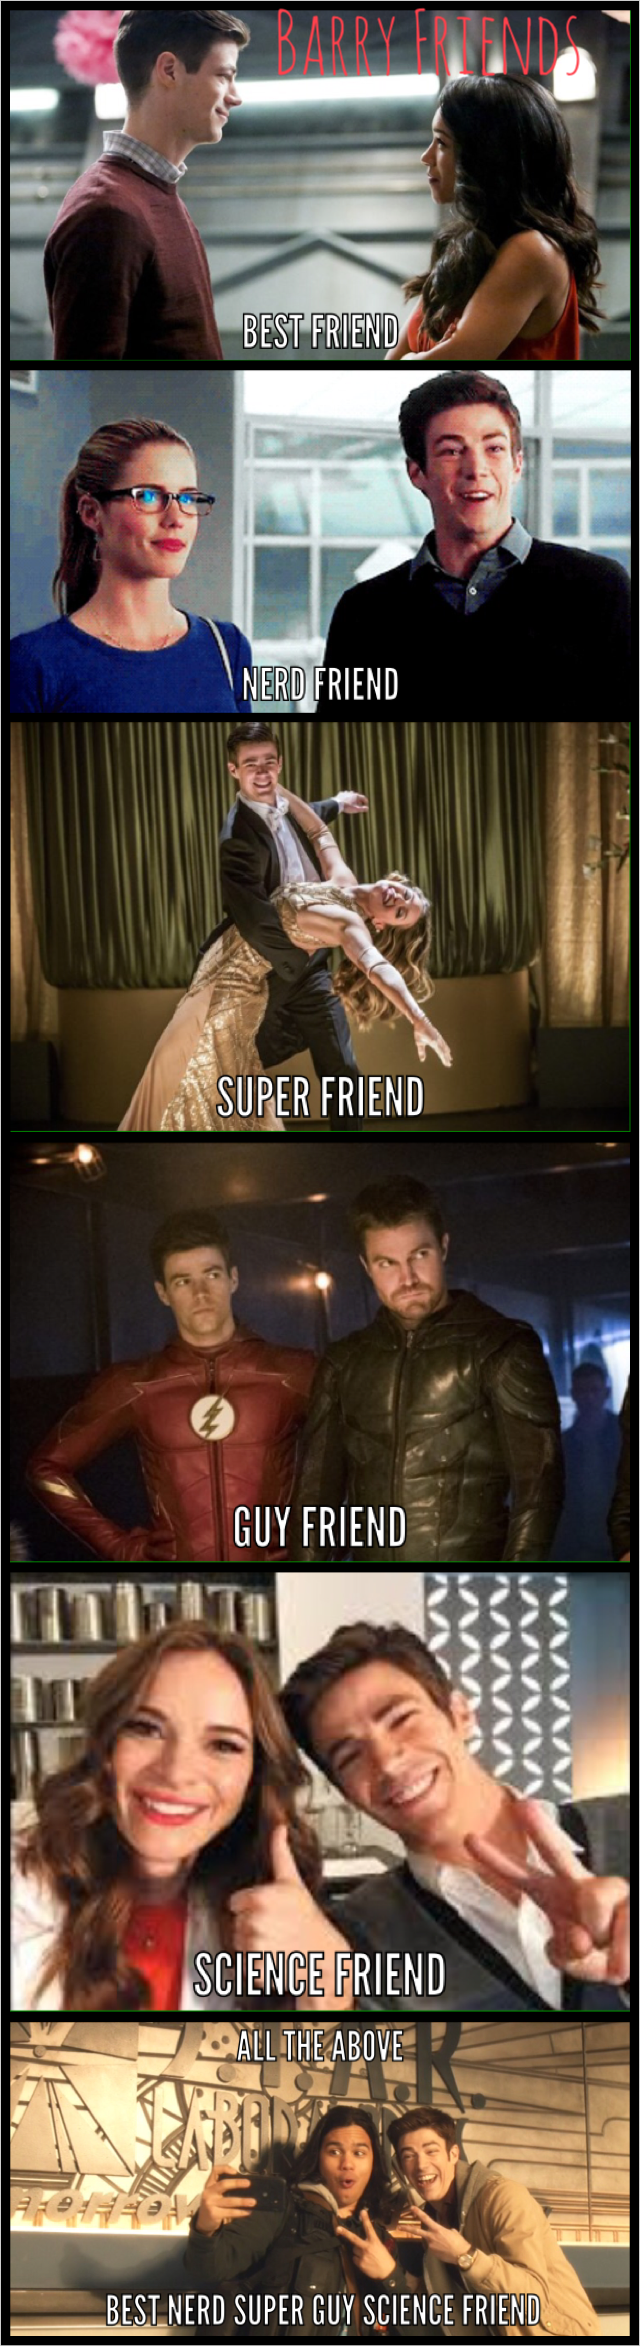 Pin By Roblox Gacha Life On Legends Of Super Flarrow Flash Funny Girl Humor The Flash Grant Gustin